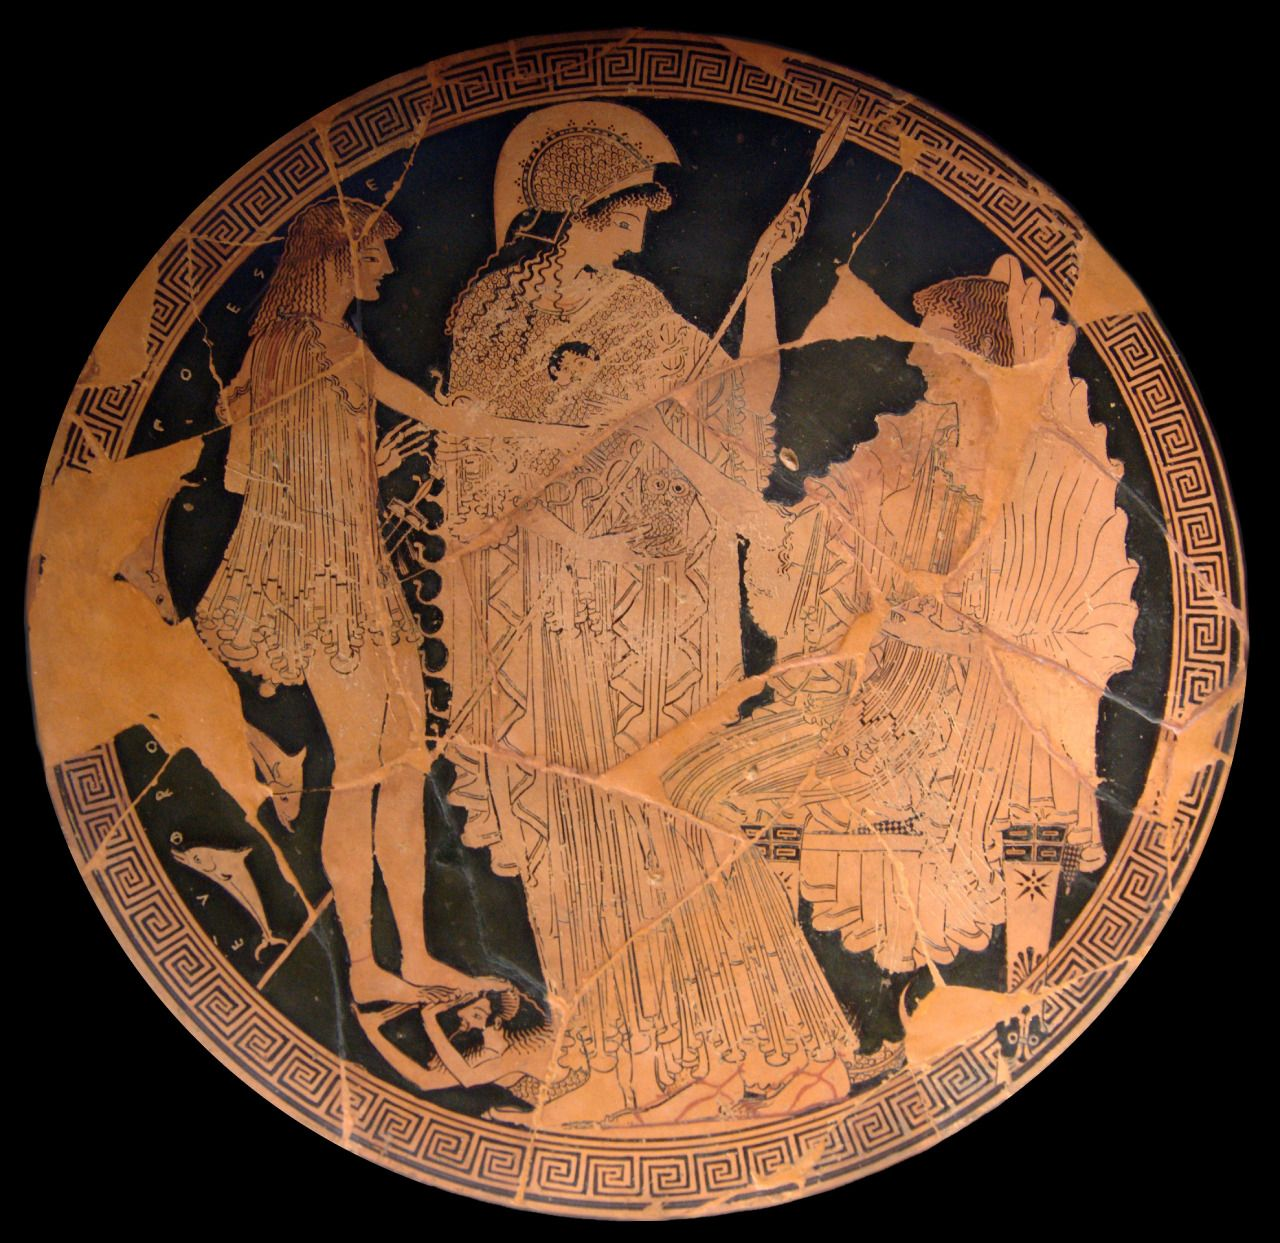 Theseus and Amphitrite with Athena looking on. Interior from an Attic red-figure cup by Onesimos, an ancient Athenian vase painter, 500–490 BC.